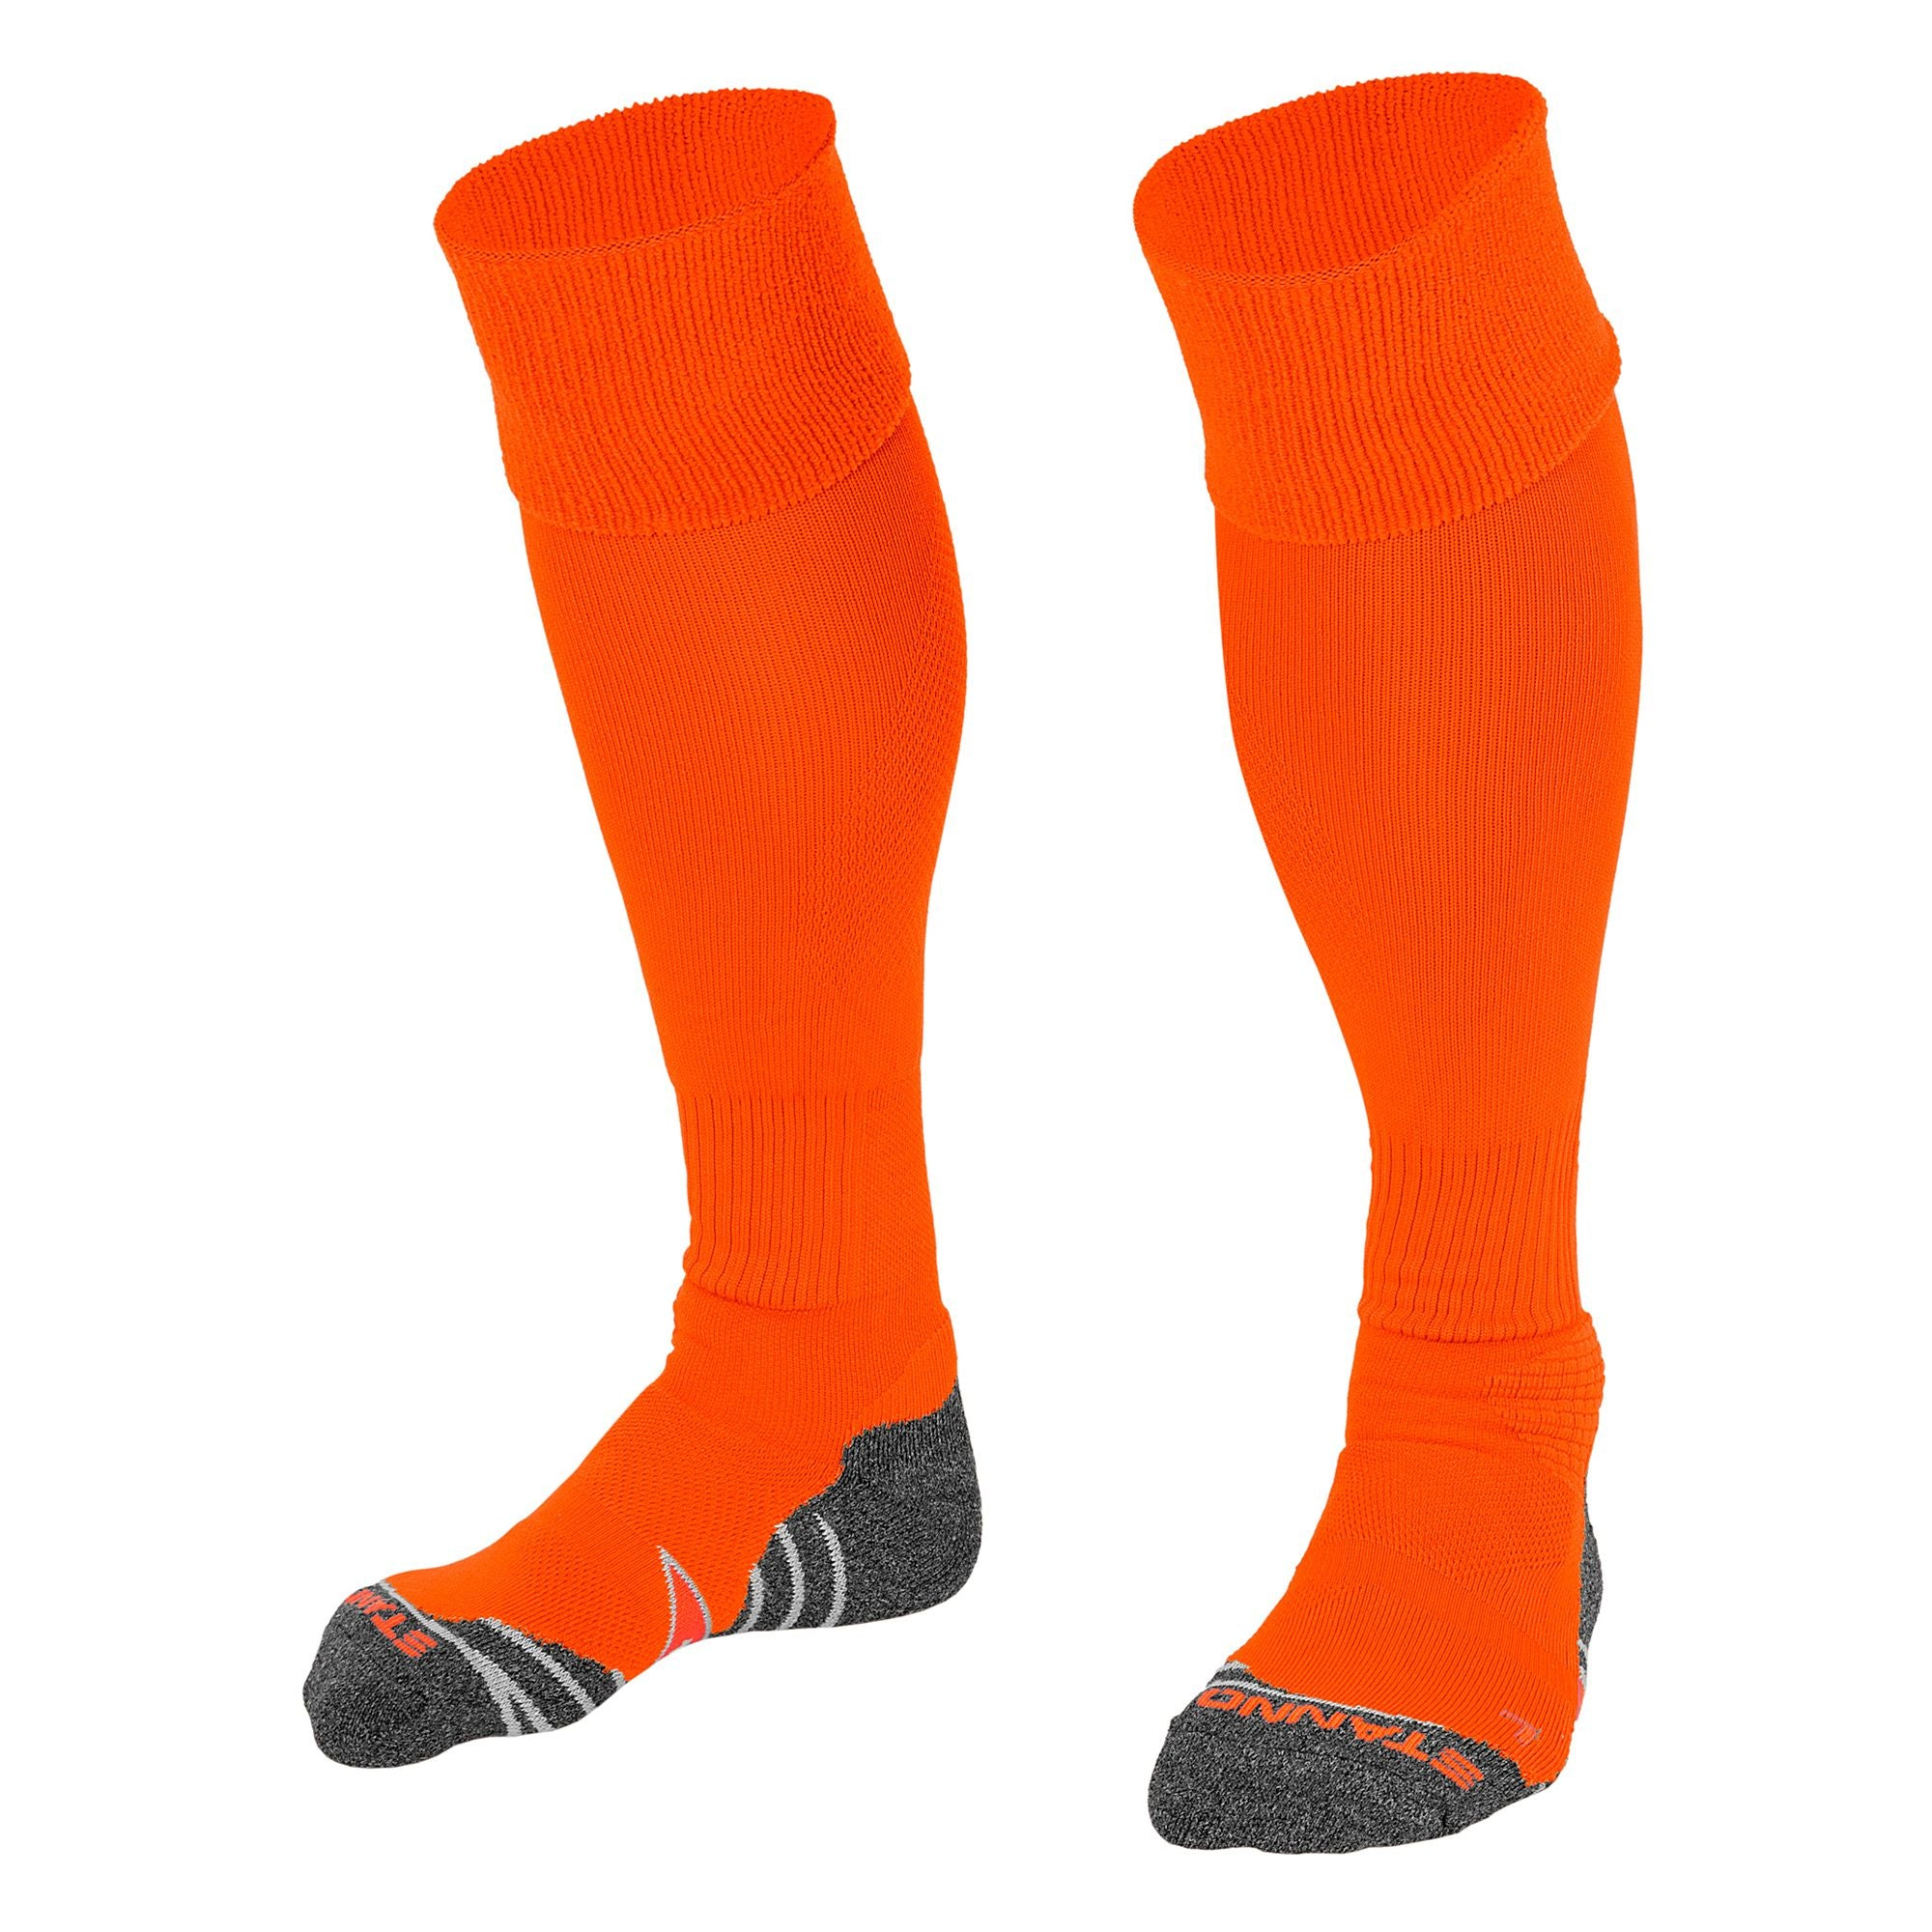 Stanno Uni Sock II football sock in neon orange with grey, white and orange sole